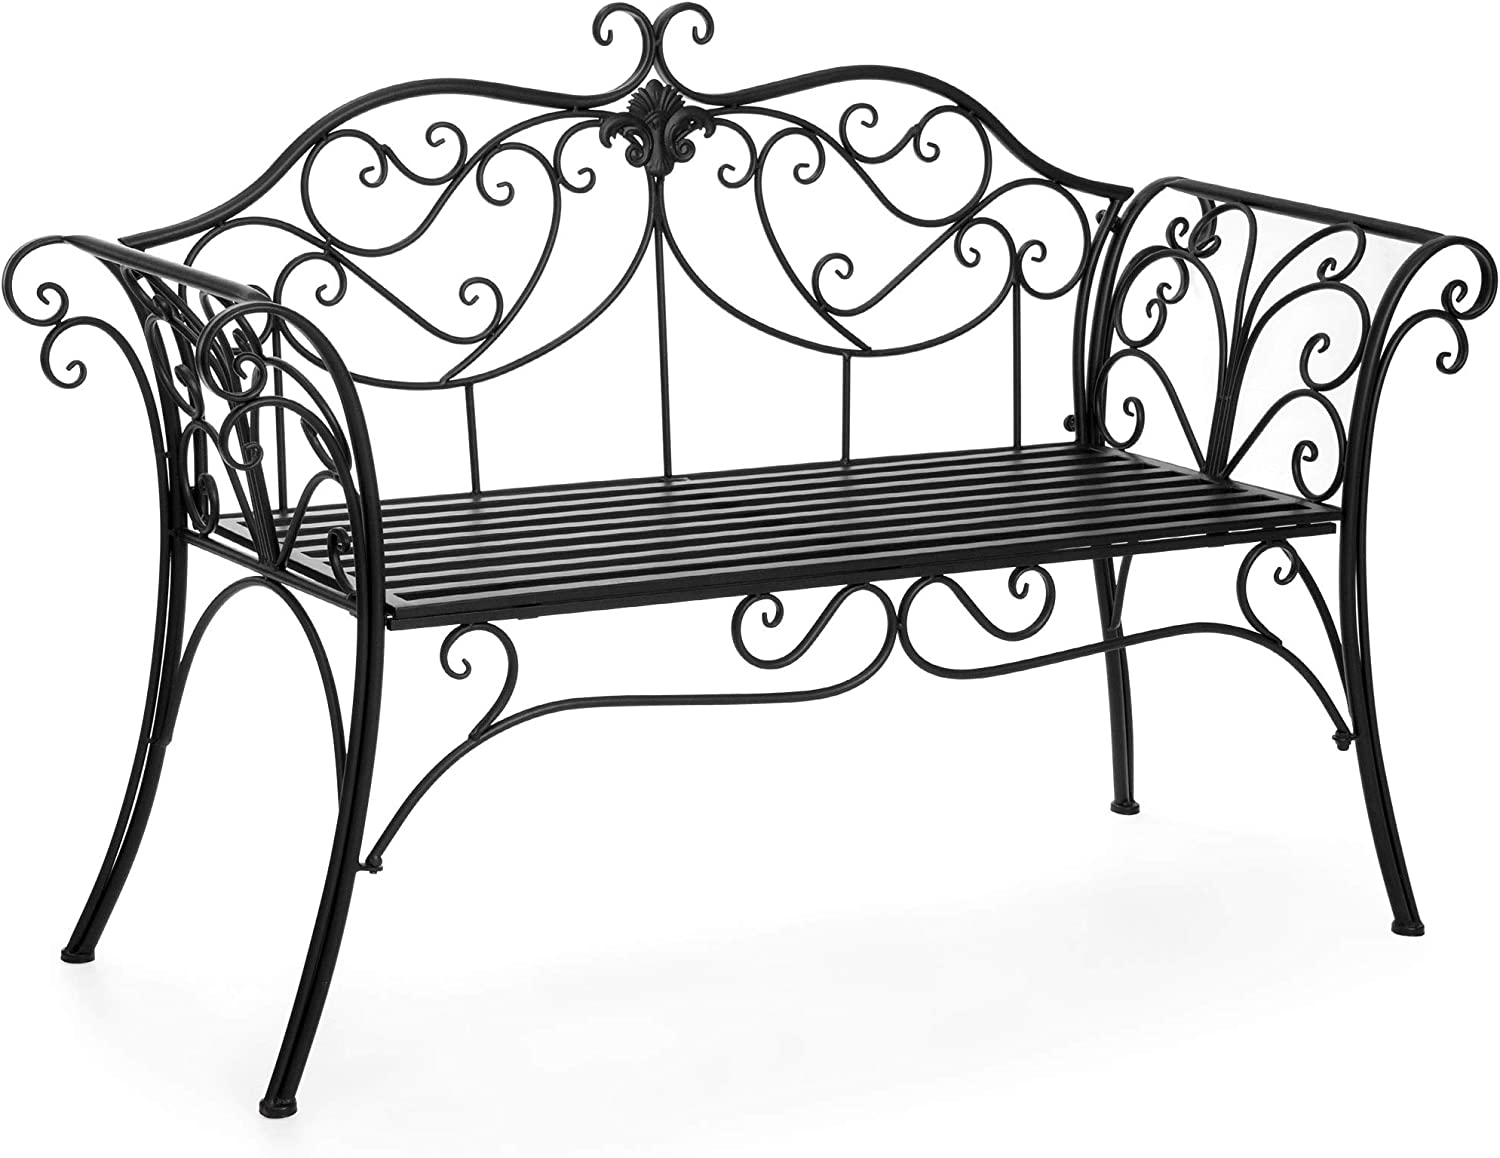 Best Choice Products 52in 2-Person Decorative Scroll Metal Patio Garden Bench Furniture w Armrests – Black